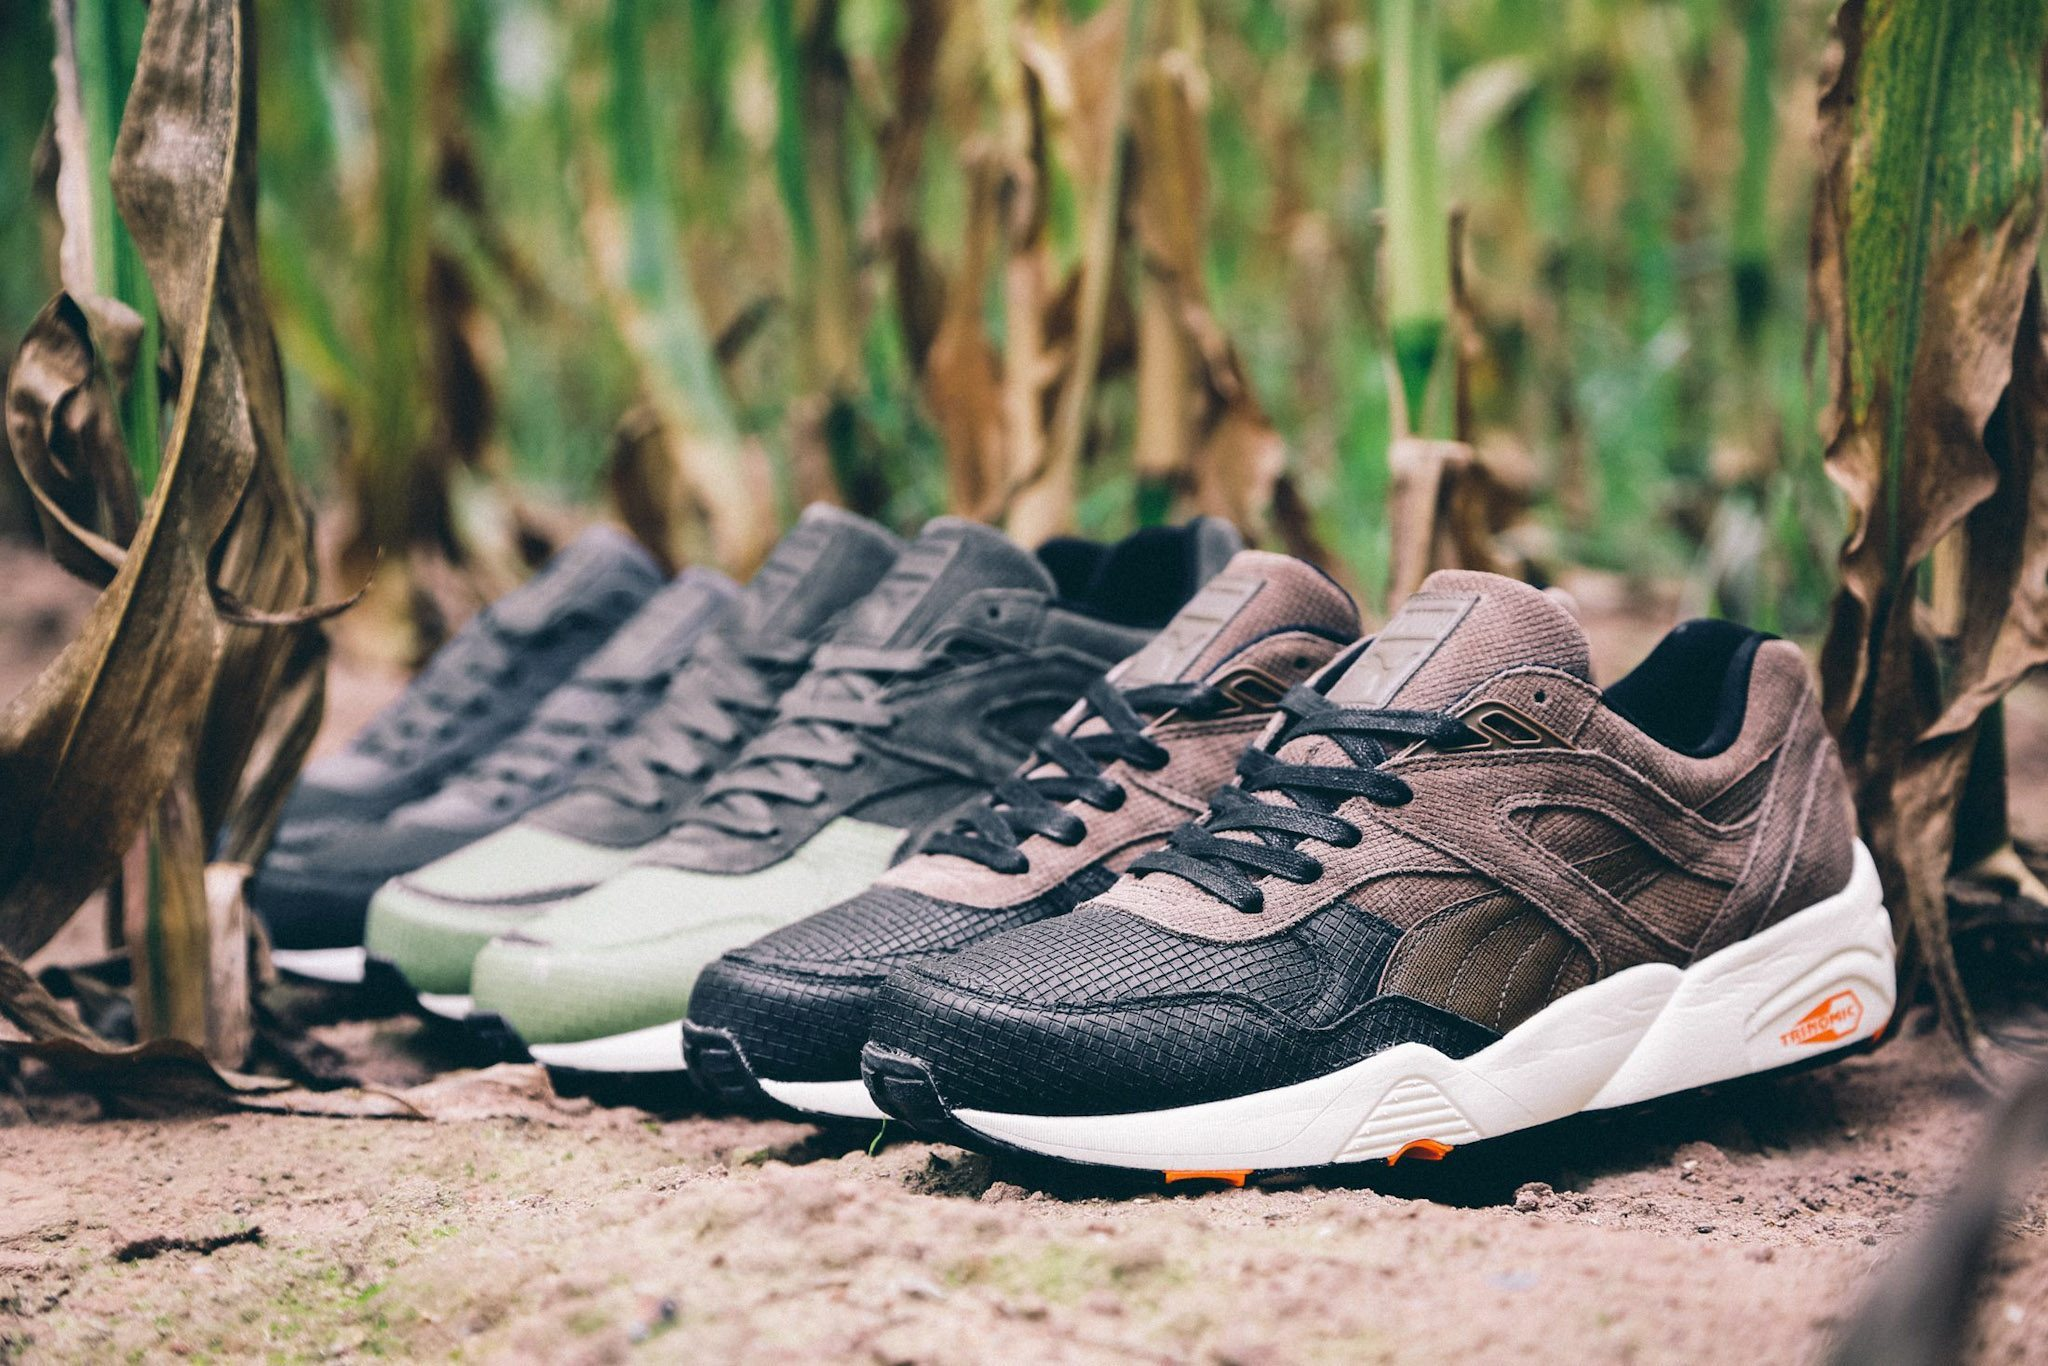 Puma R698 Grid Fall Pack 19